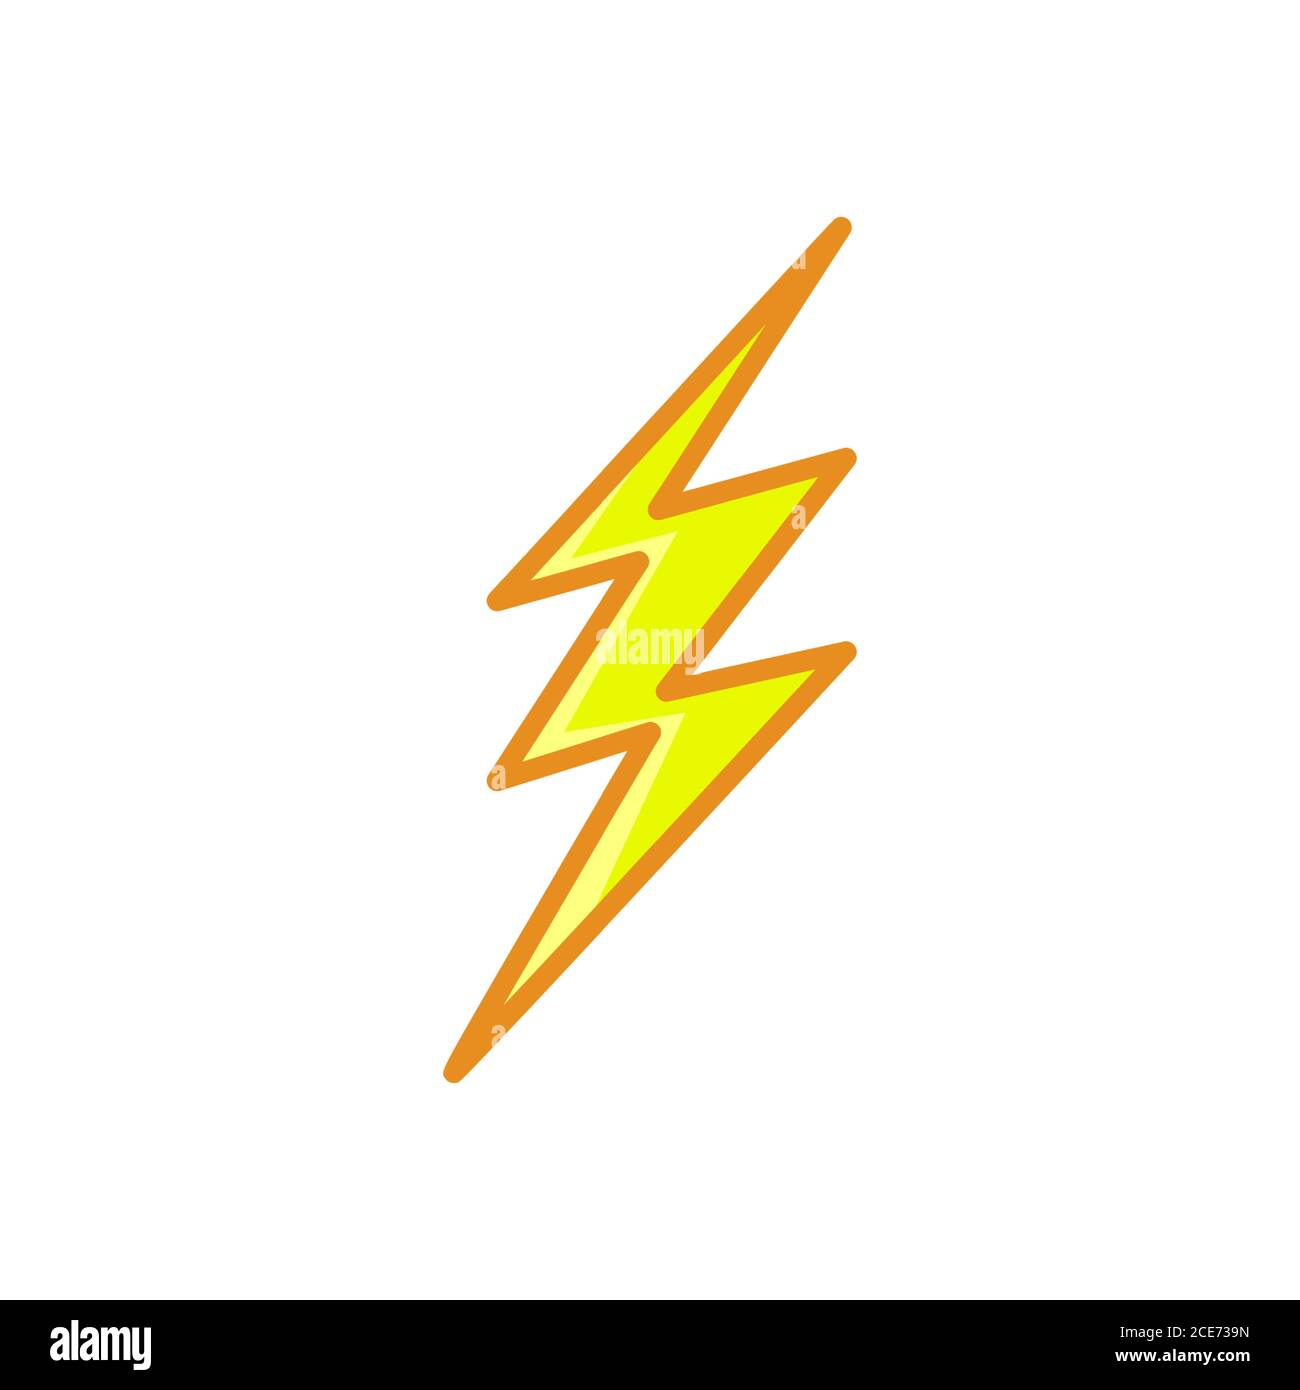 Lightning Bolt Thunderbolt Line Style Yellow Color Flat Icon Stock Vector Image Art Alamy